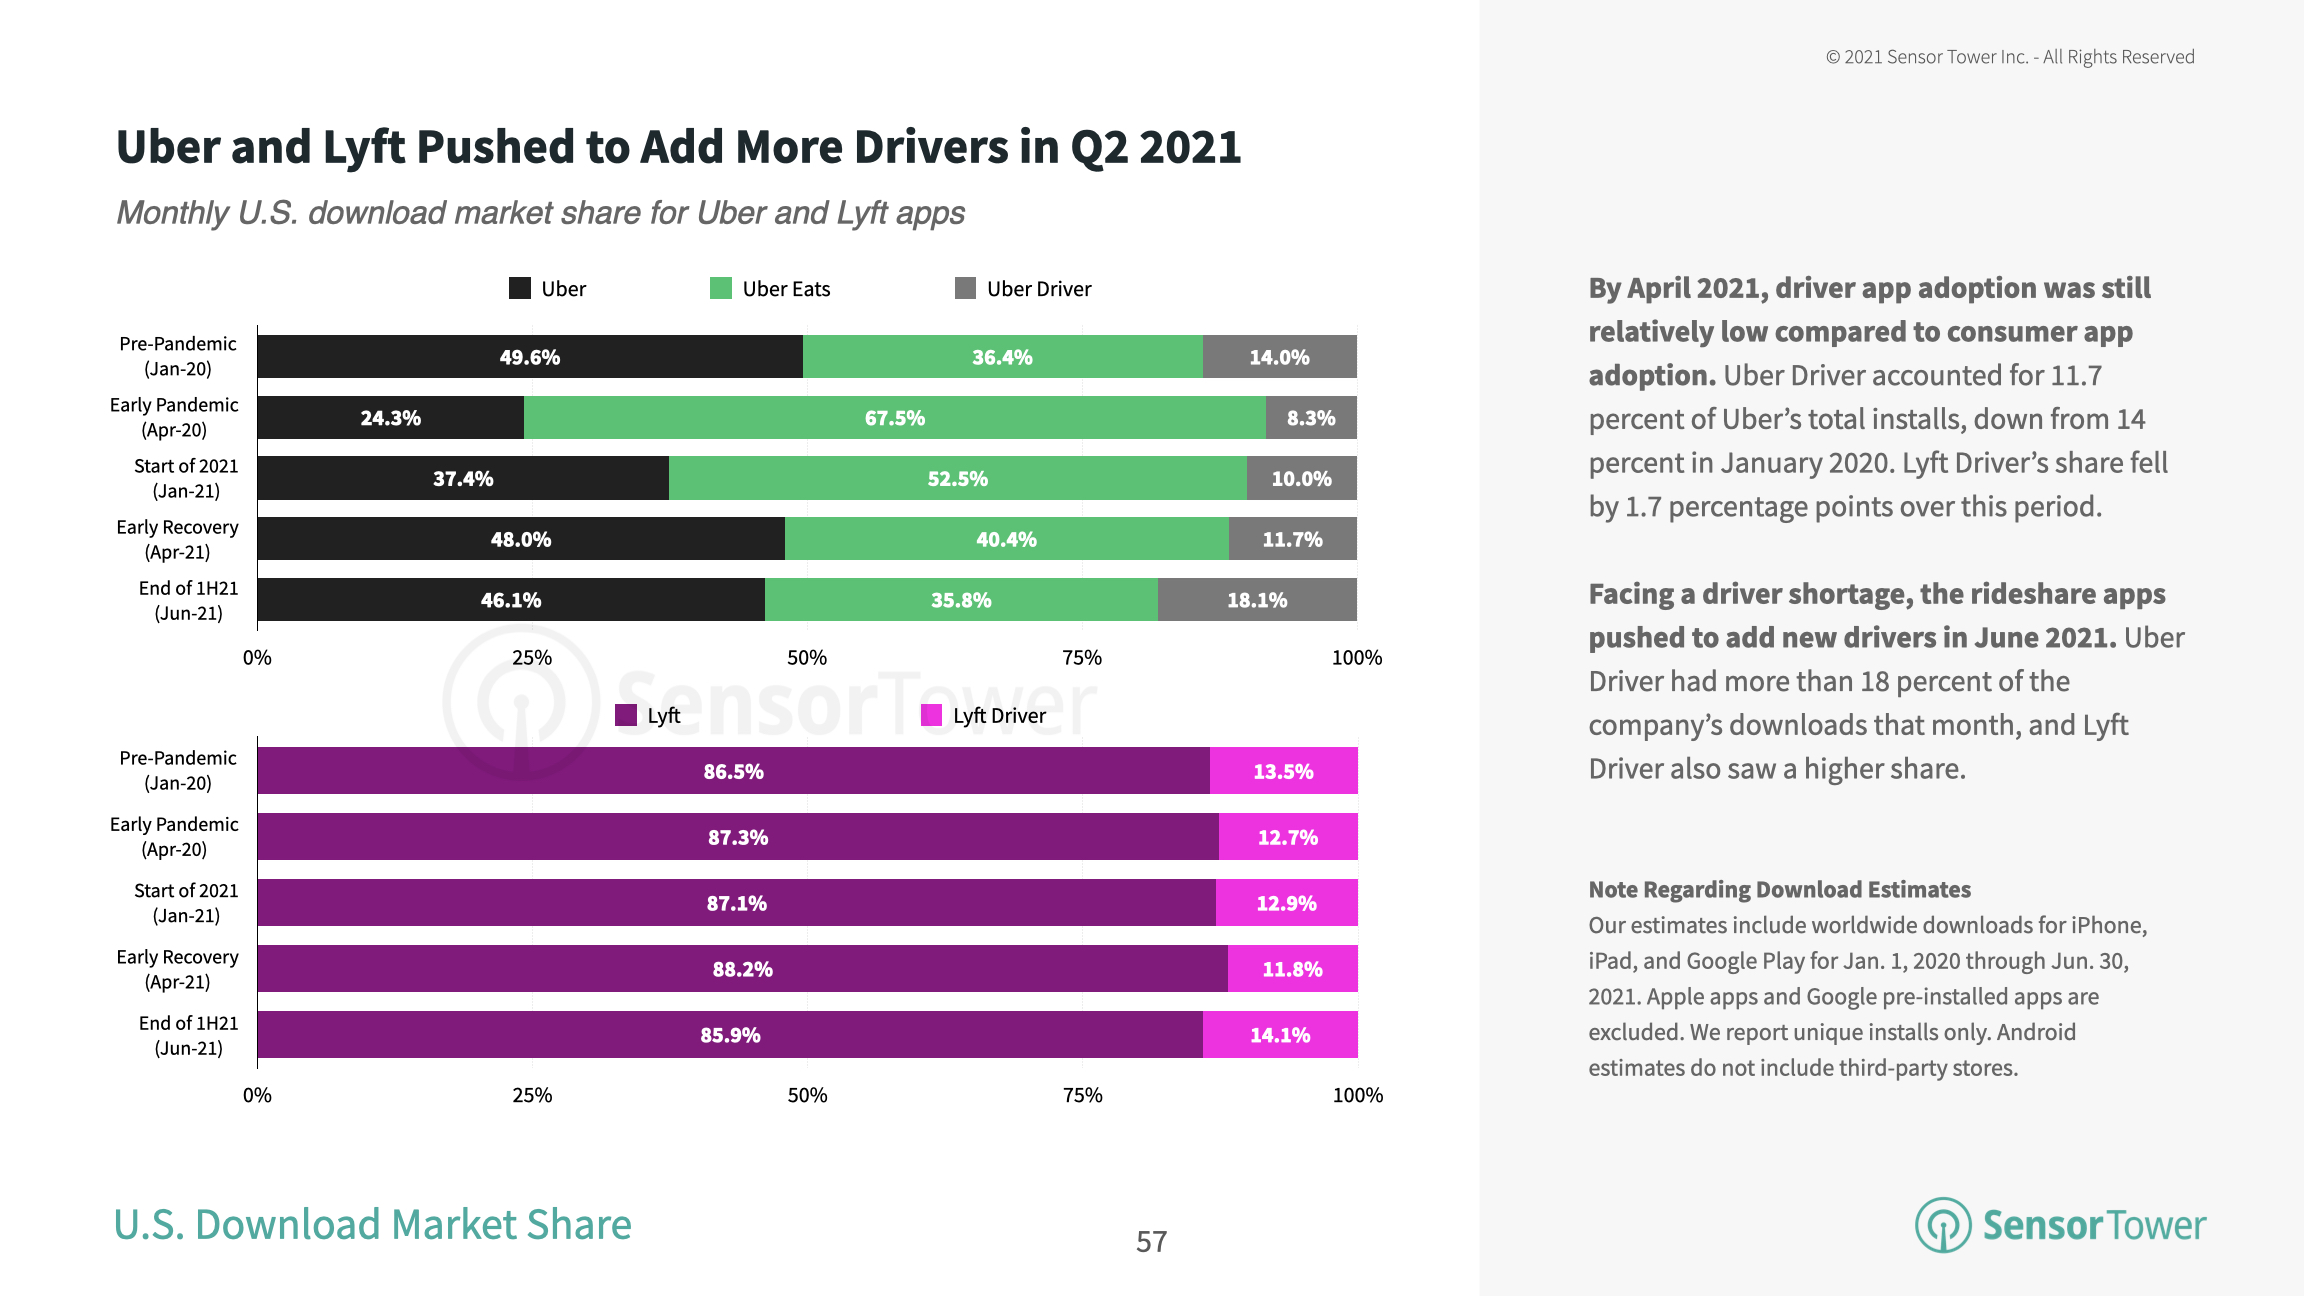 Uber and Lyft pushed to add more drivers in Q2 2021